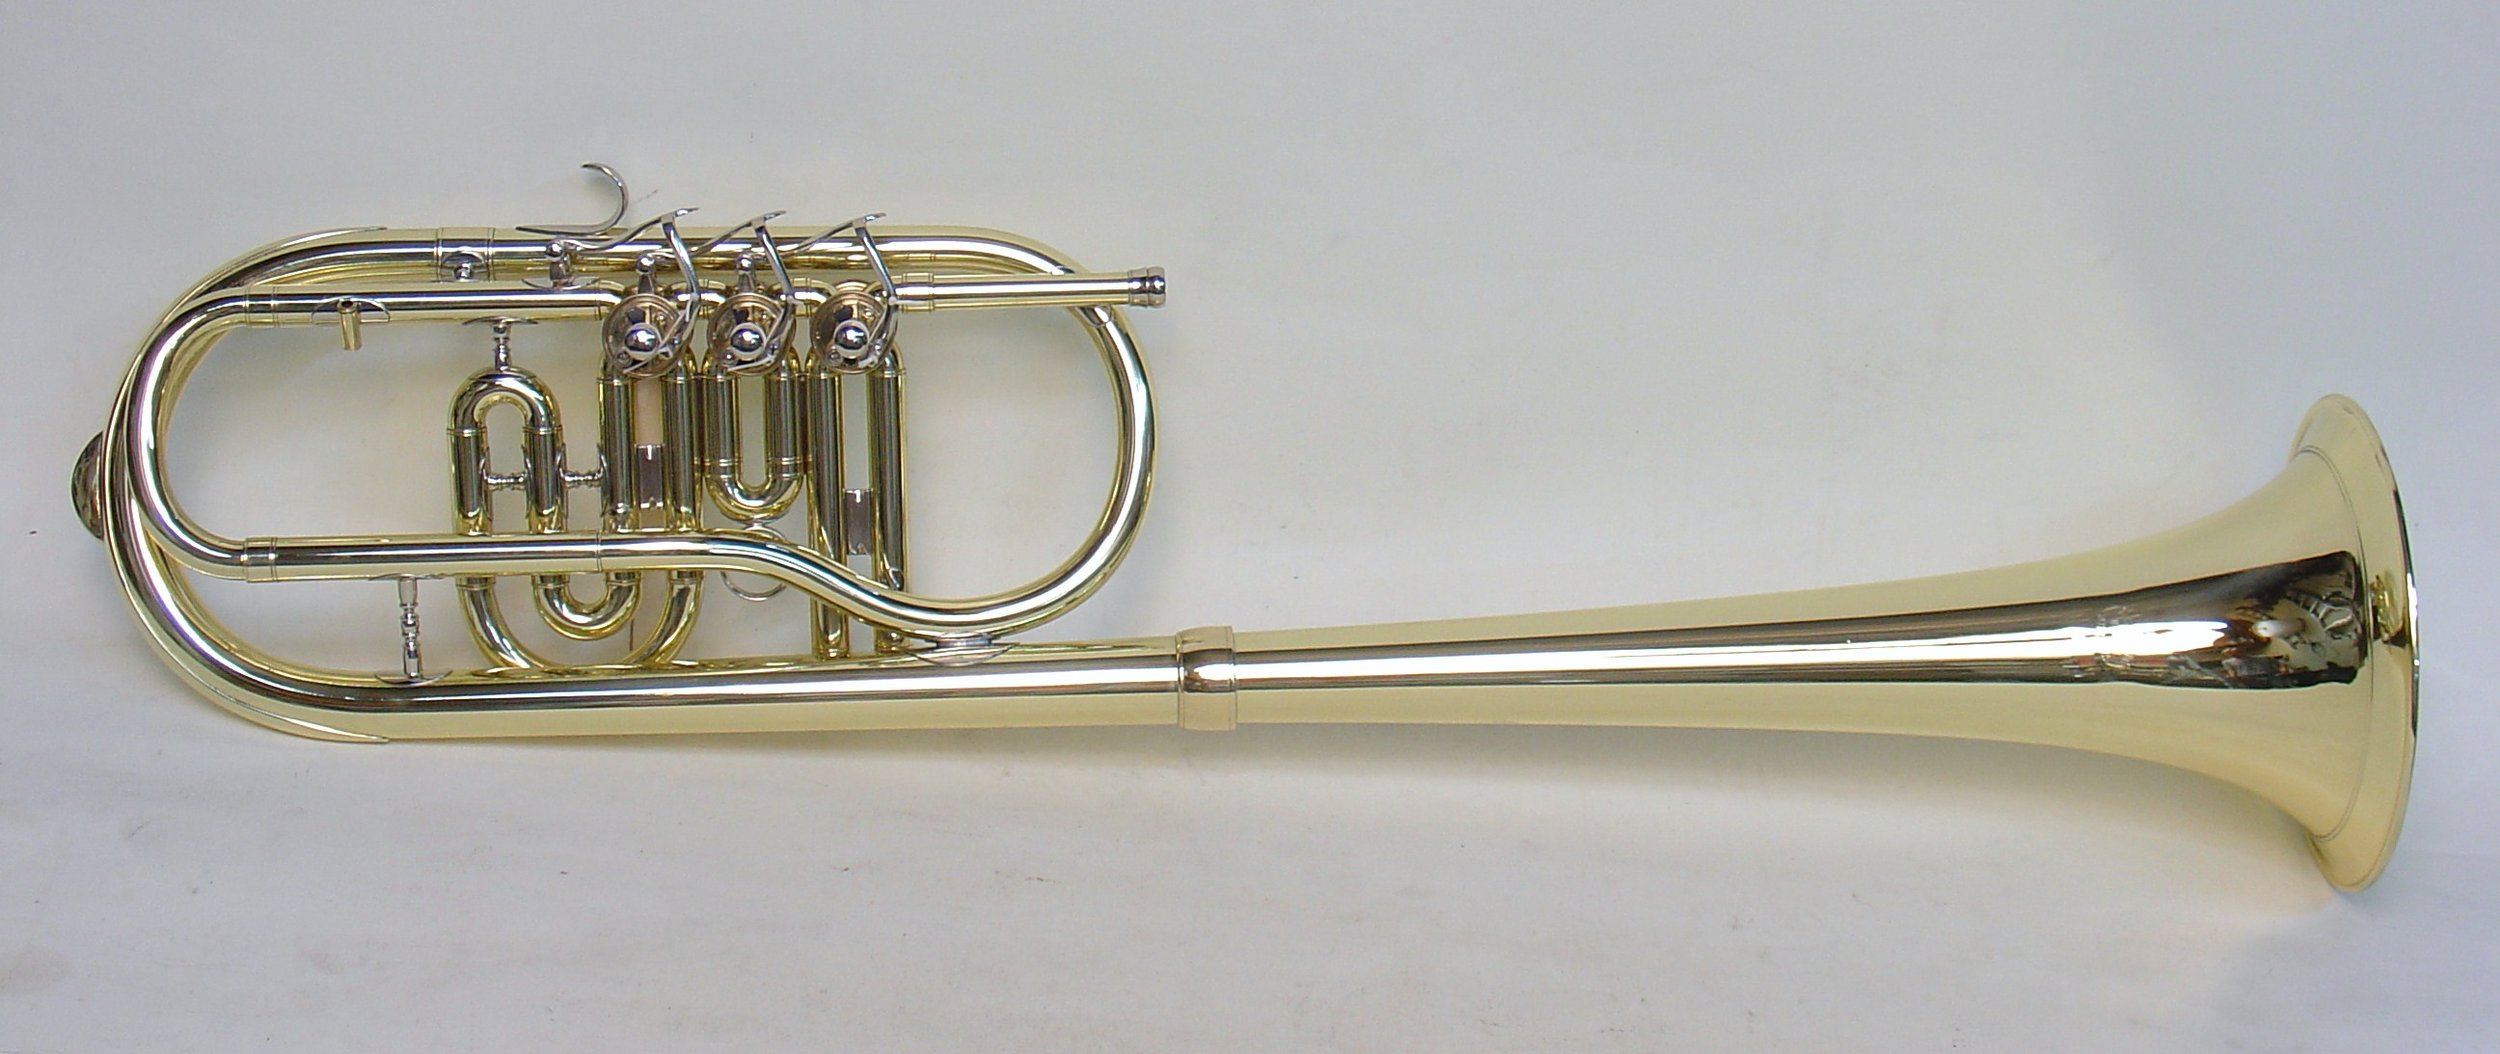 Eb alto with bell over the shoulder